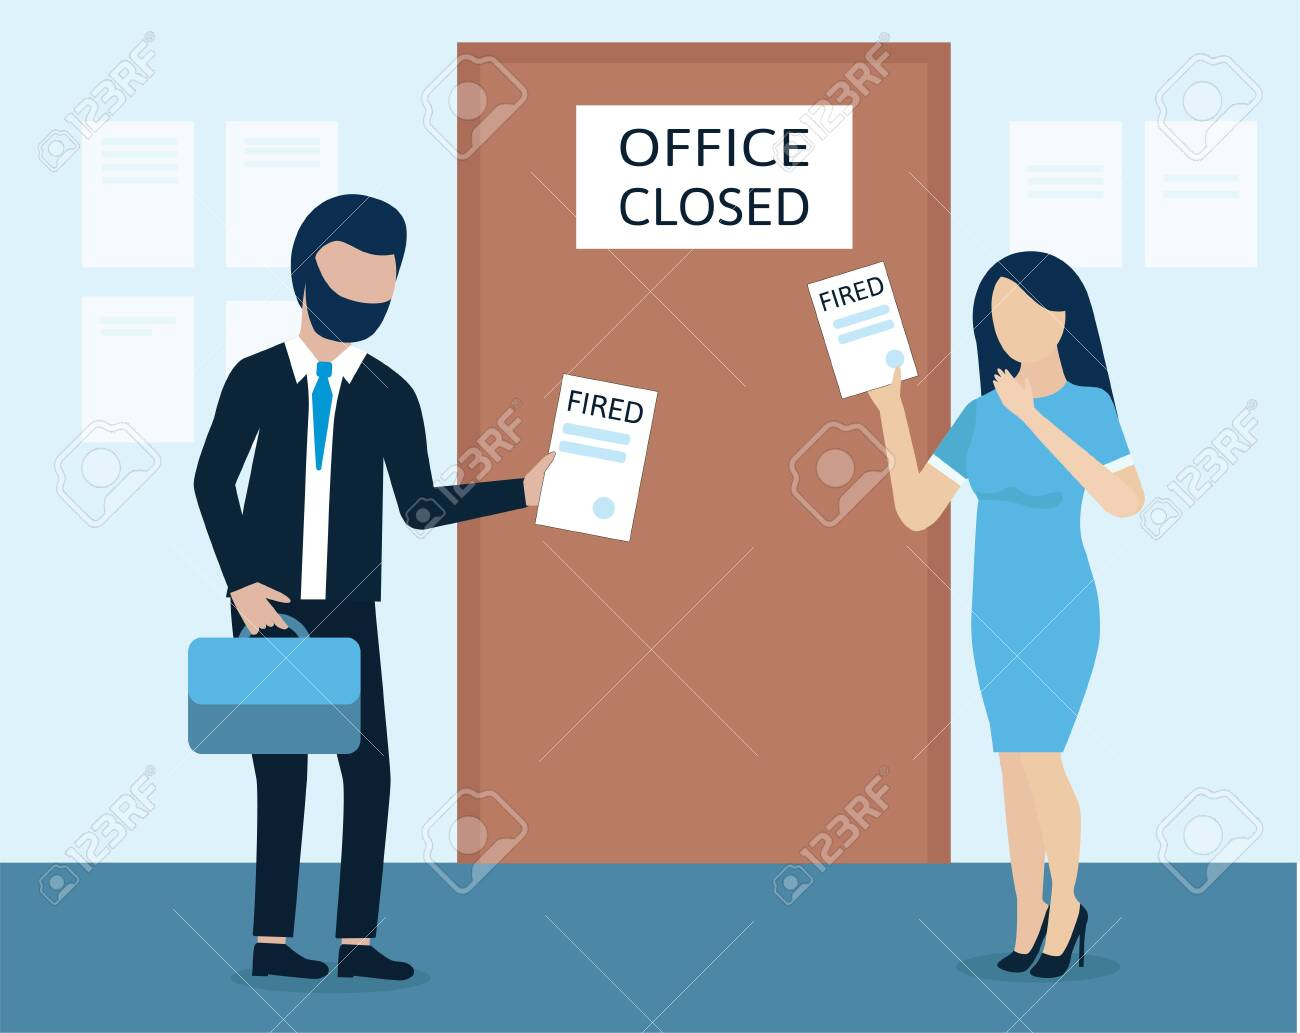 Man and woman are fired. dismissal, severance, termination in case of coronavirus or virus COVID-19. - 146683152